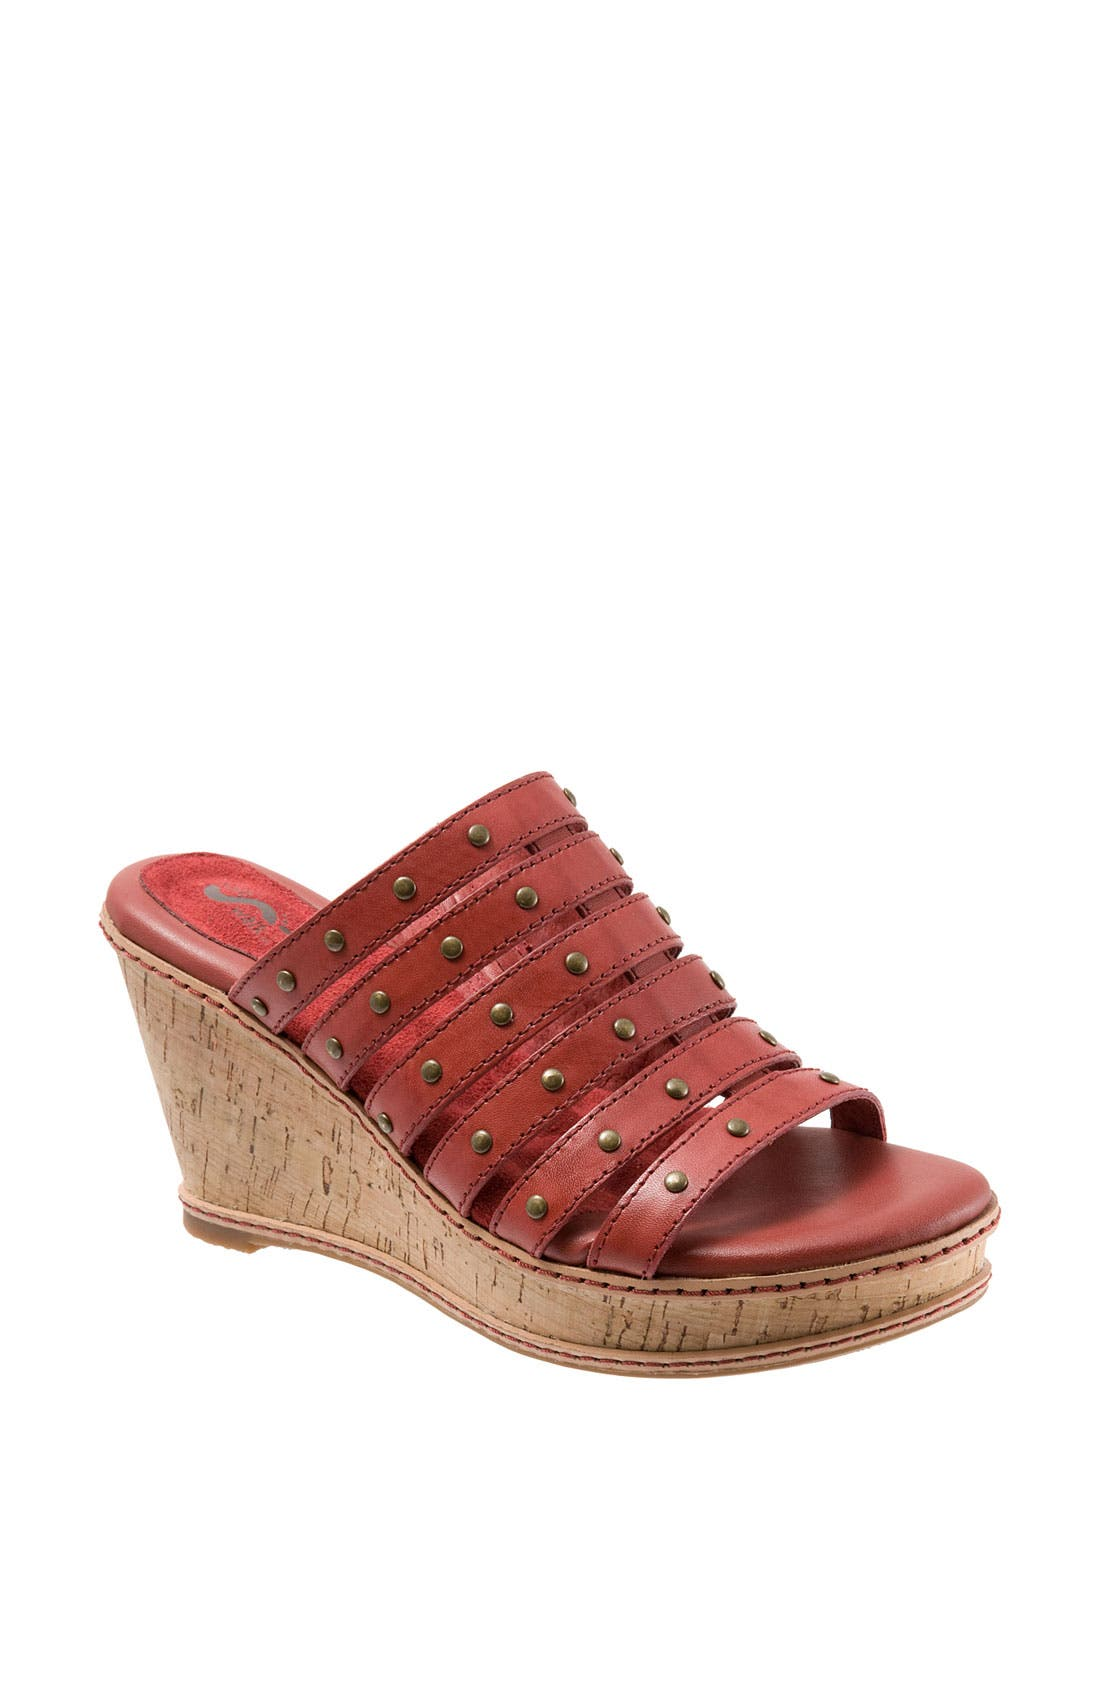 Main Image - SoftWalk® 'San Fran' Wedge Sandal